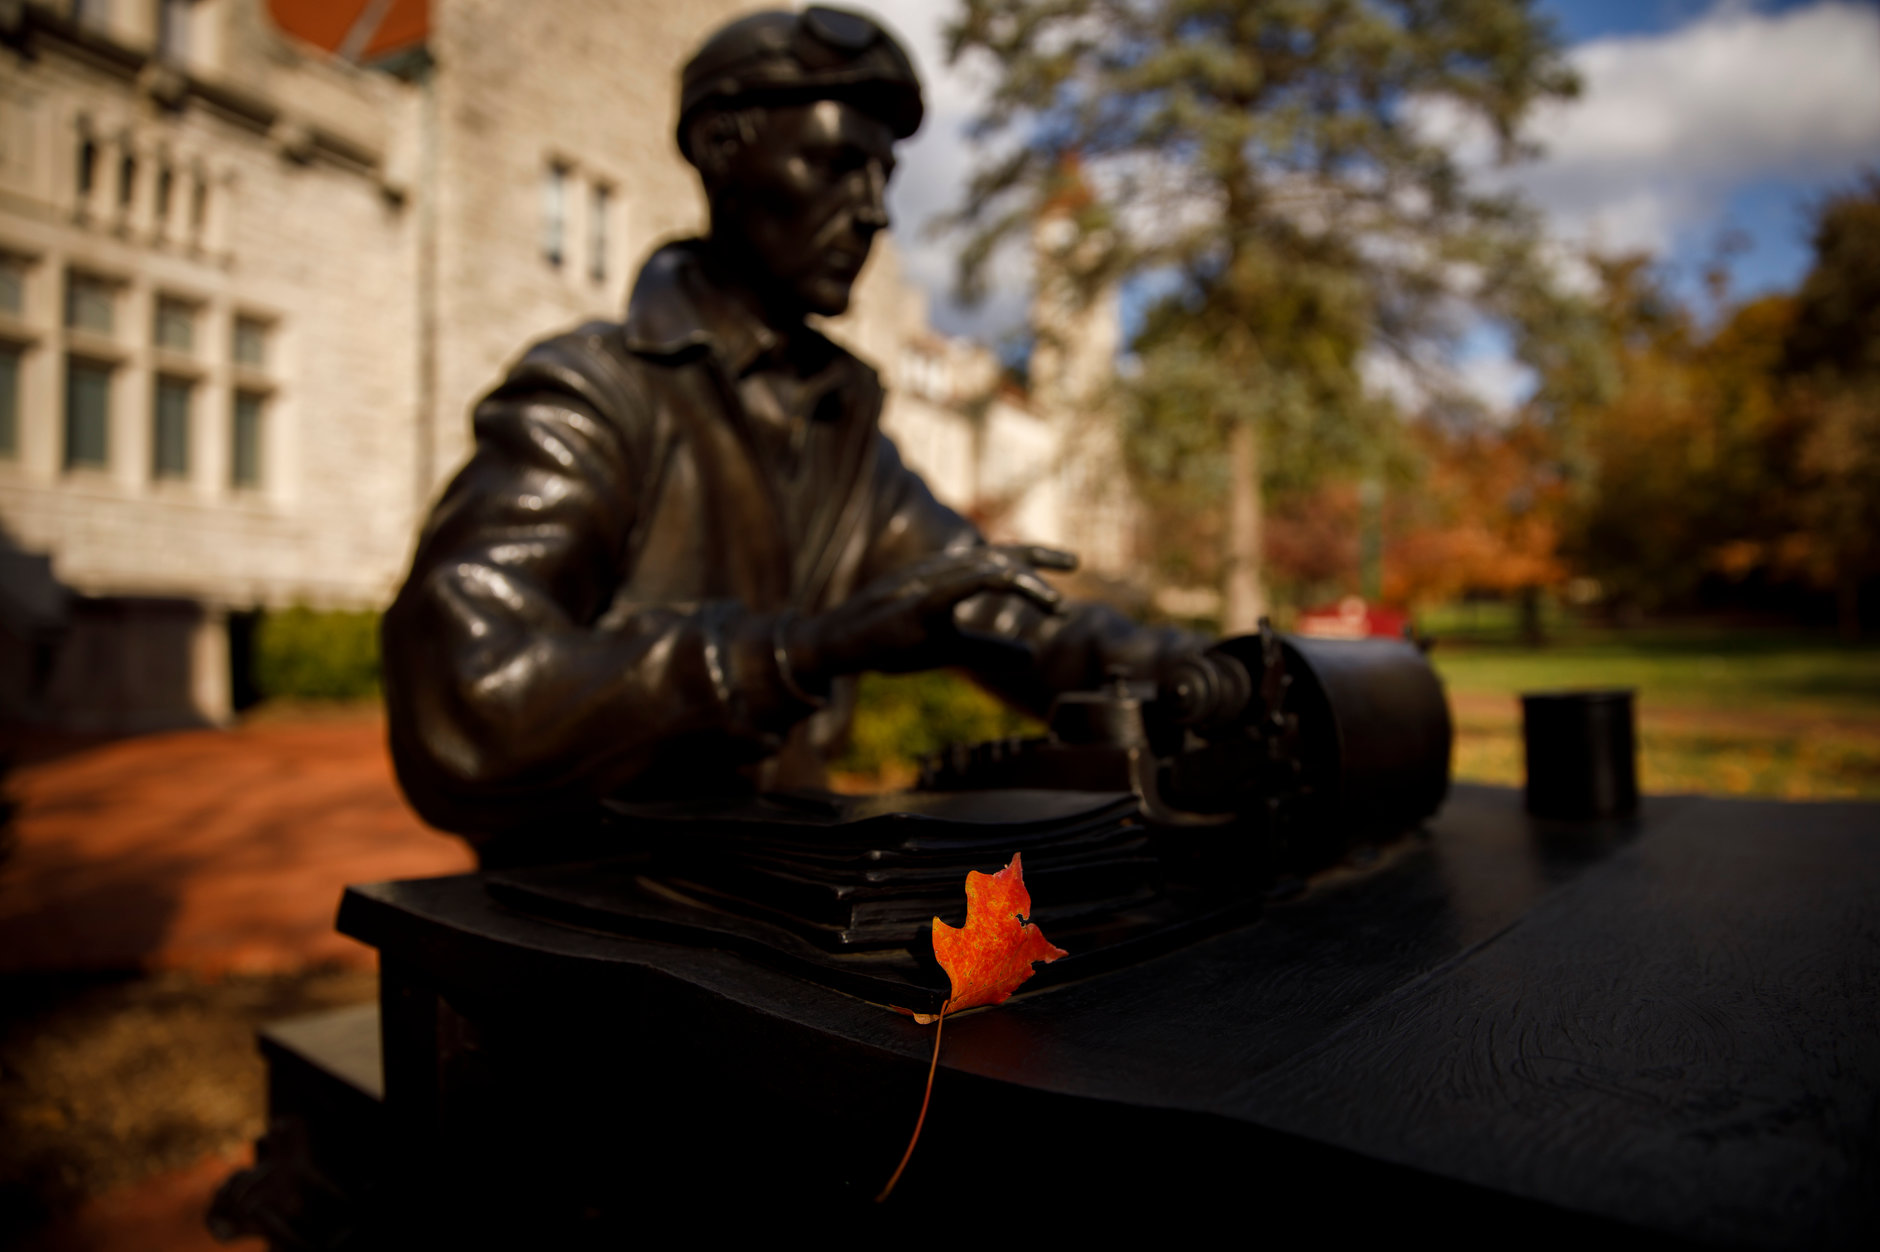 A leaf sits on a sculpture of famed WWII correspondent Ernie Pyle outside Franklin Hall on a fall day at IU Bloomington on Tuesday, Oct. 22, 2019. (James Brosher/Indiana University)